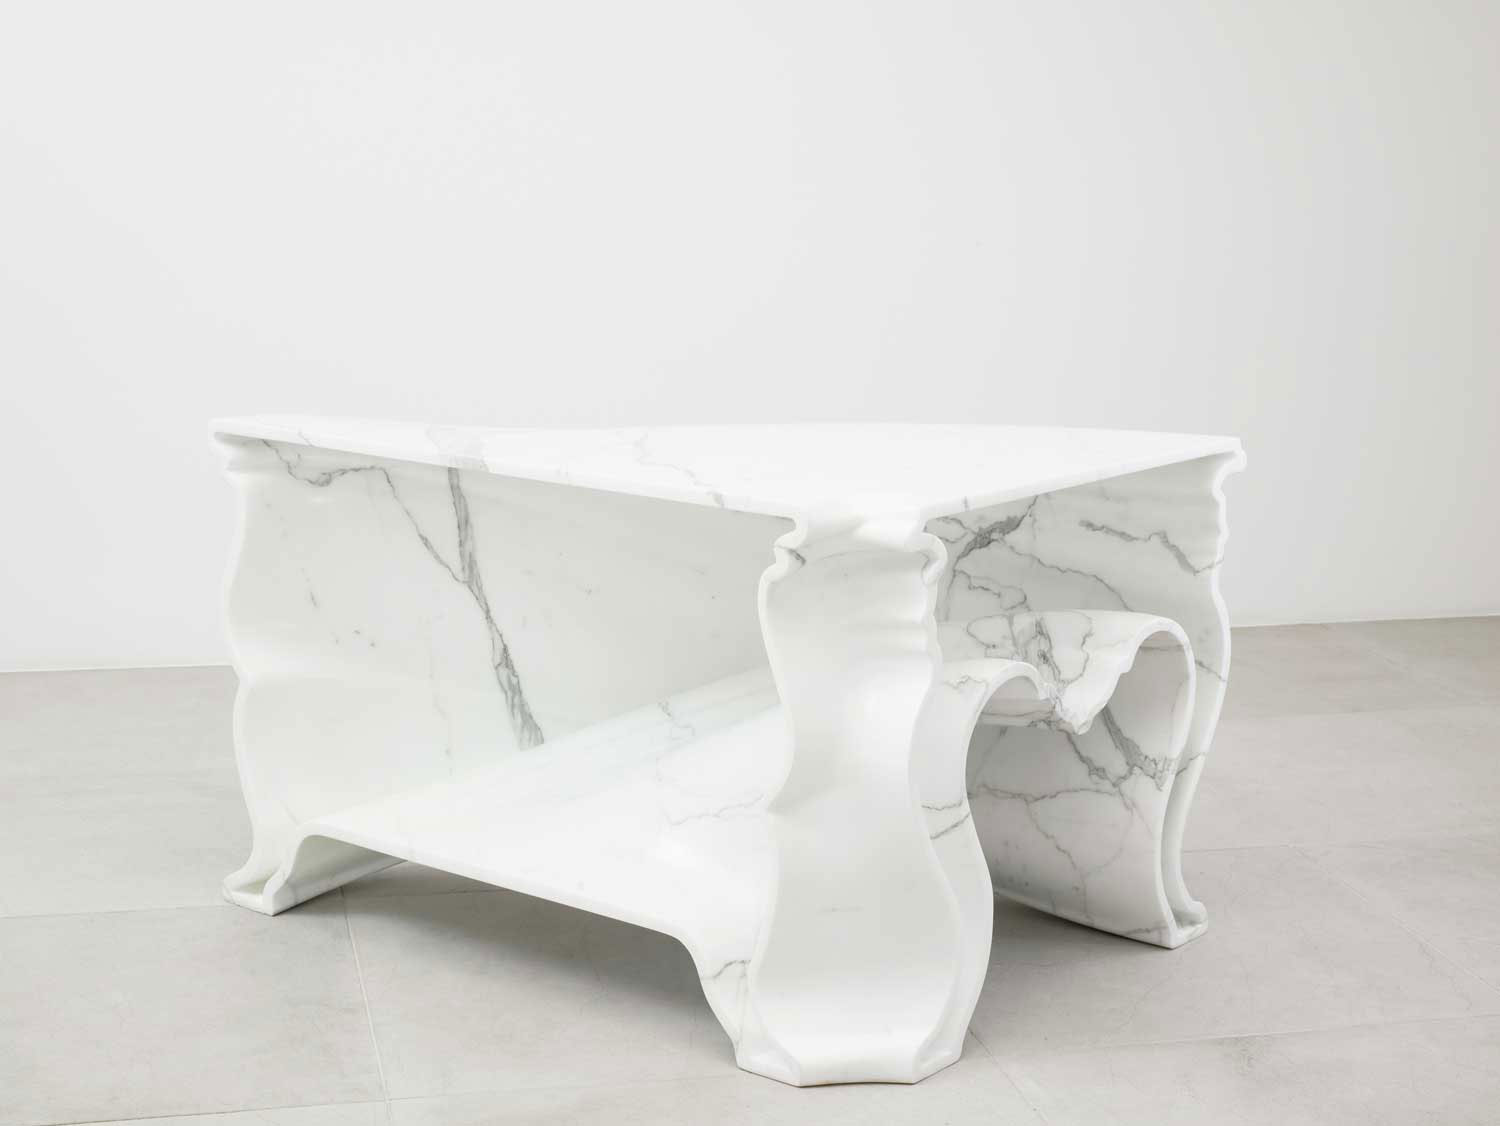 Cinderella Table by Demakersvan at Design Days Dubai 2014 | Yellowtrace